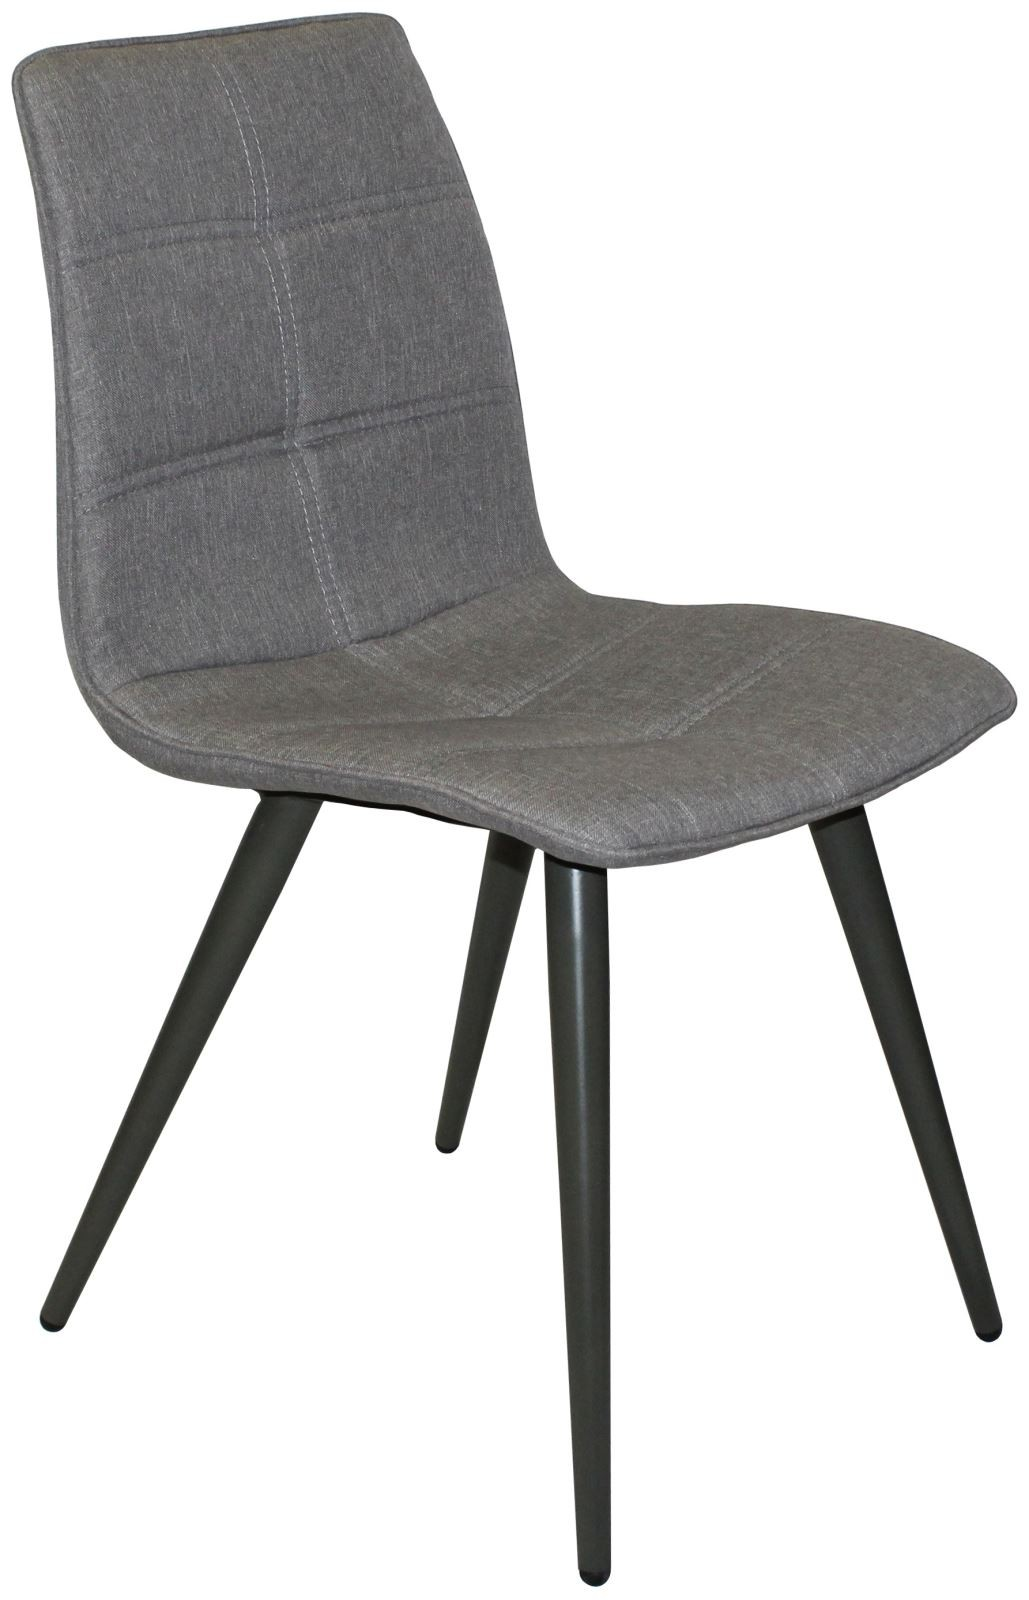 CONTEMPORARY Dining Chair - Grey